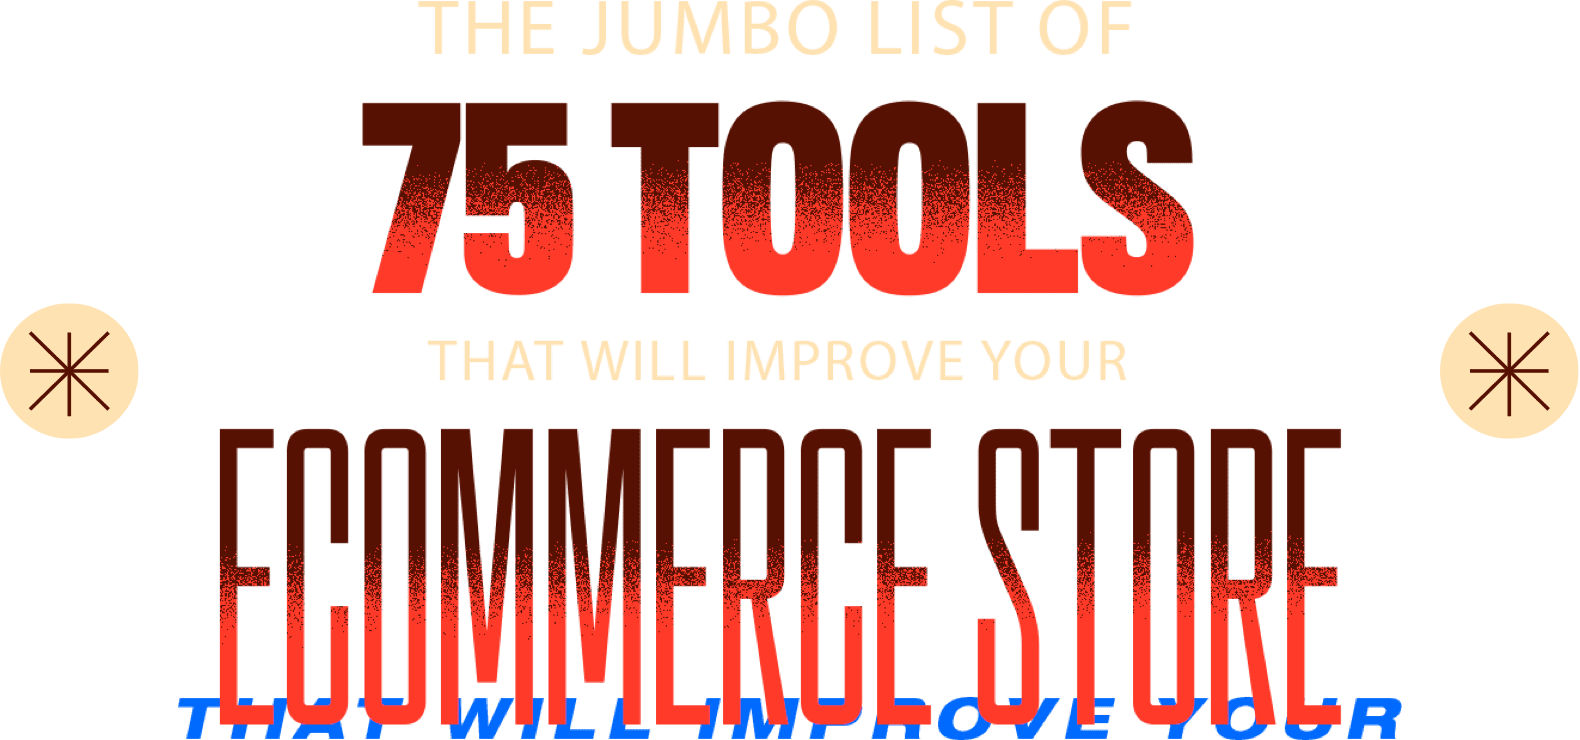 The jumbo list of 75 tools that will improve your ecommerce store